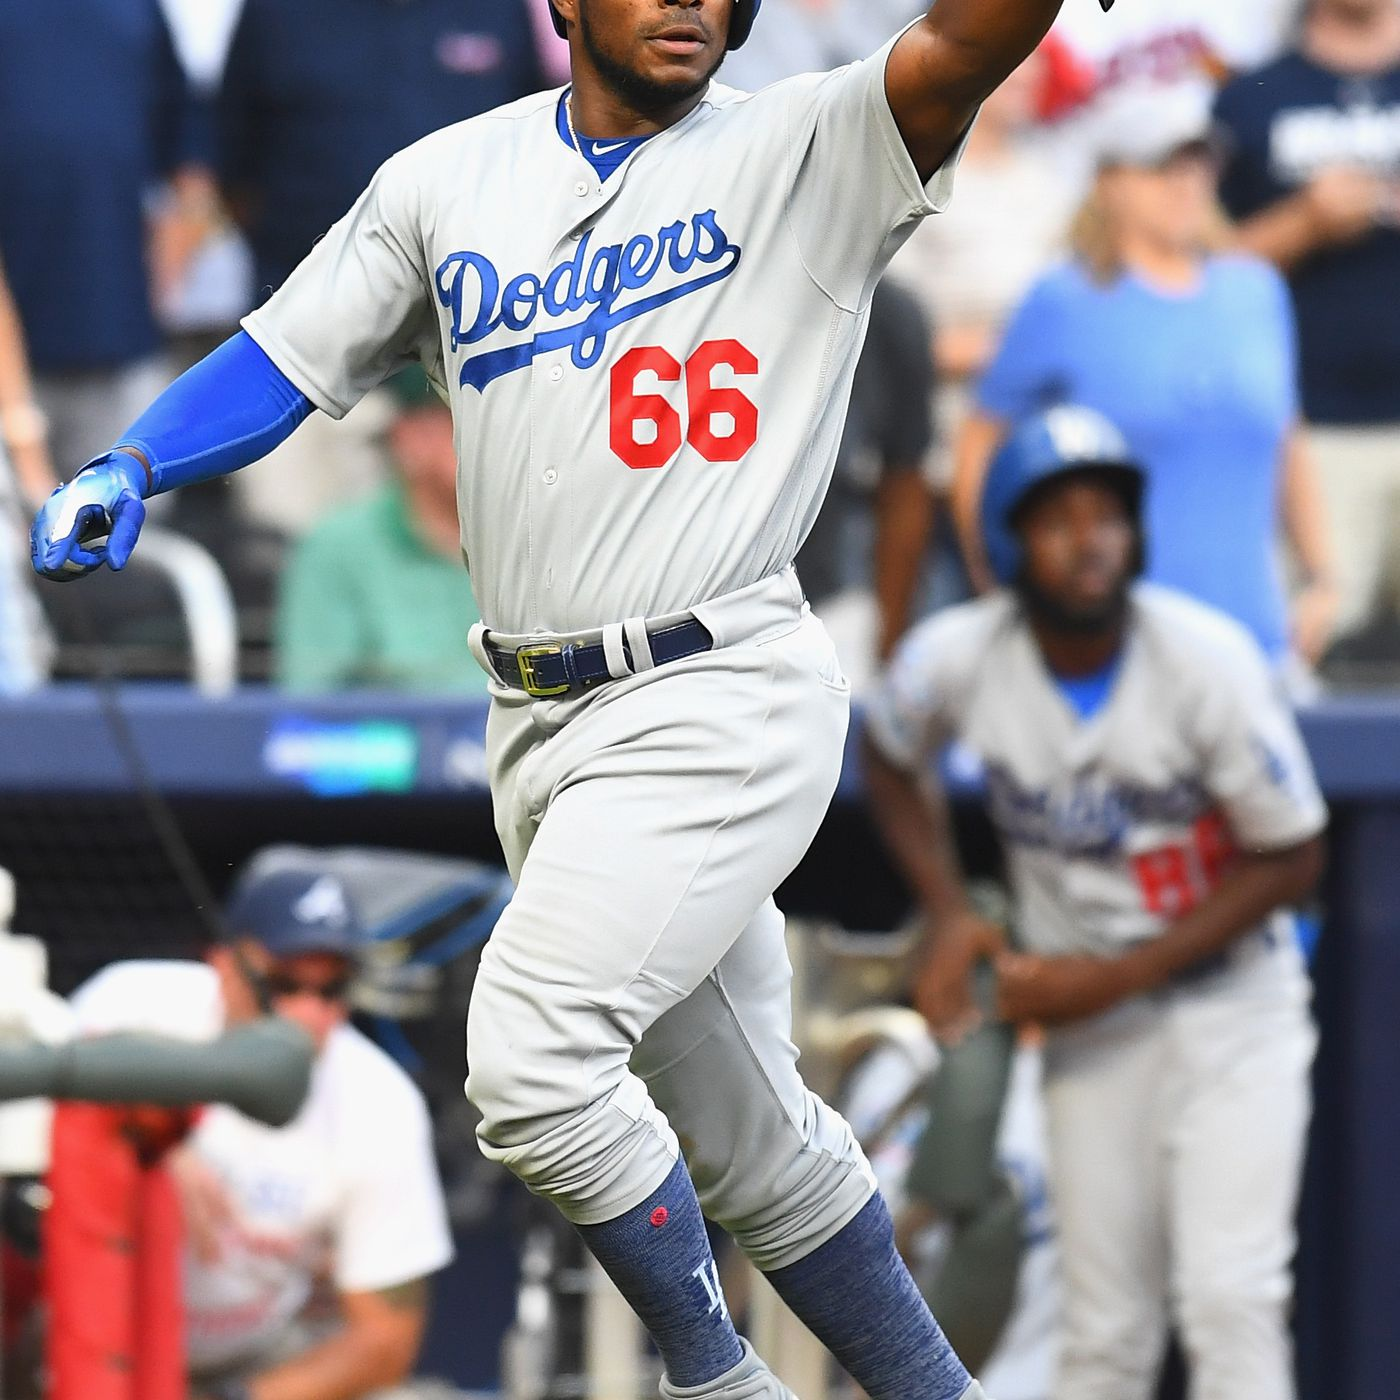 ff9bbfd1 Brewers will face Dodgers in NLCS after Dodgers 3-1 series win over ...